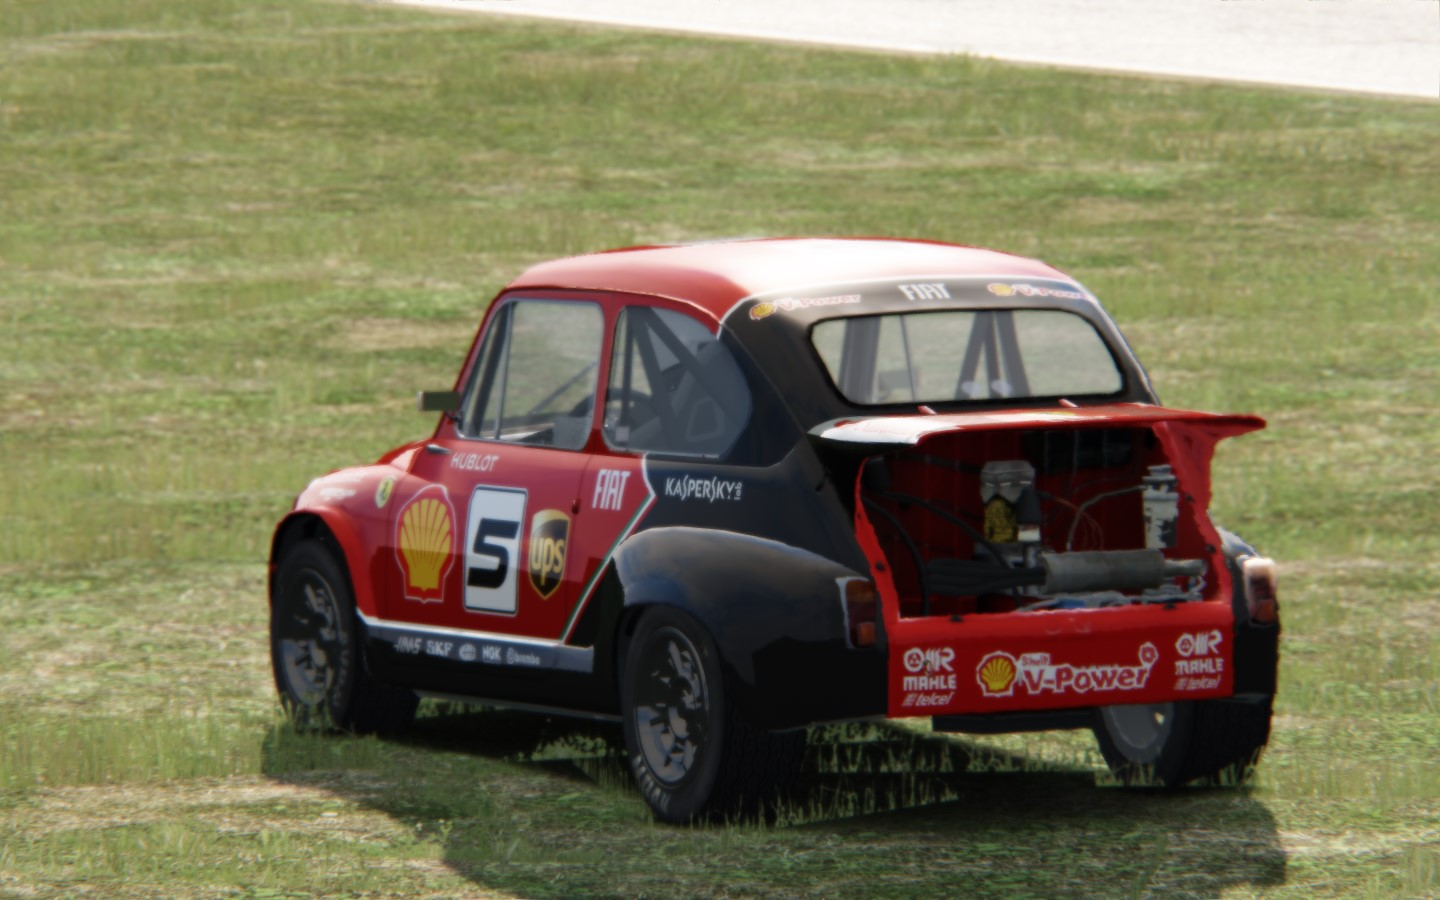 Screenshot_abarth_1000tc_vallelunga_17-1-116-23-45-57.jpg